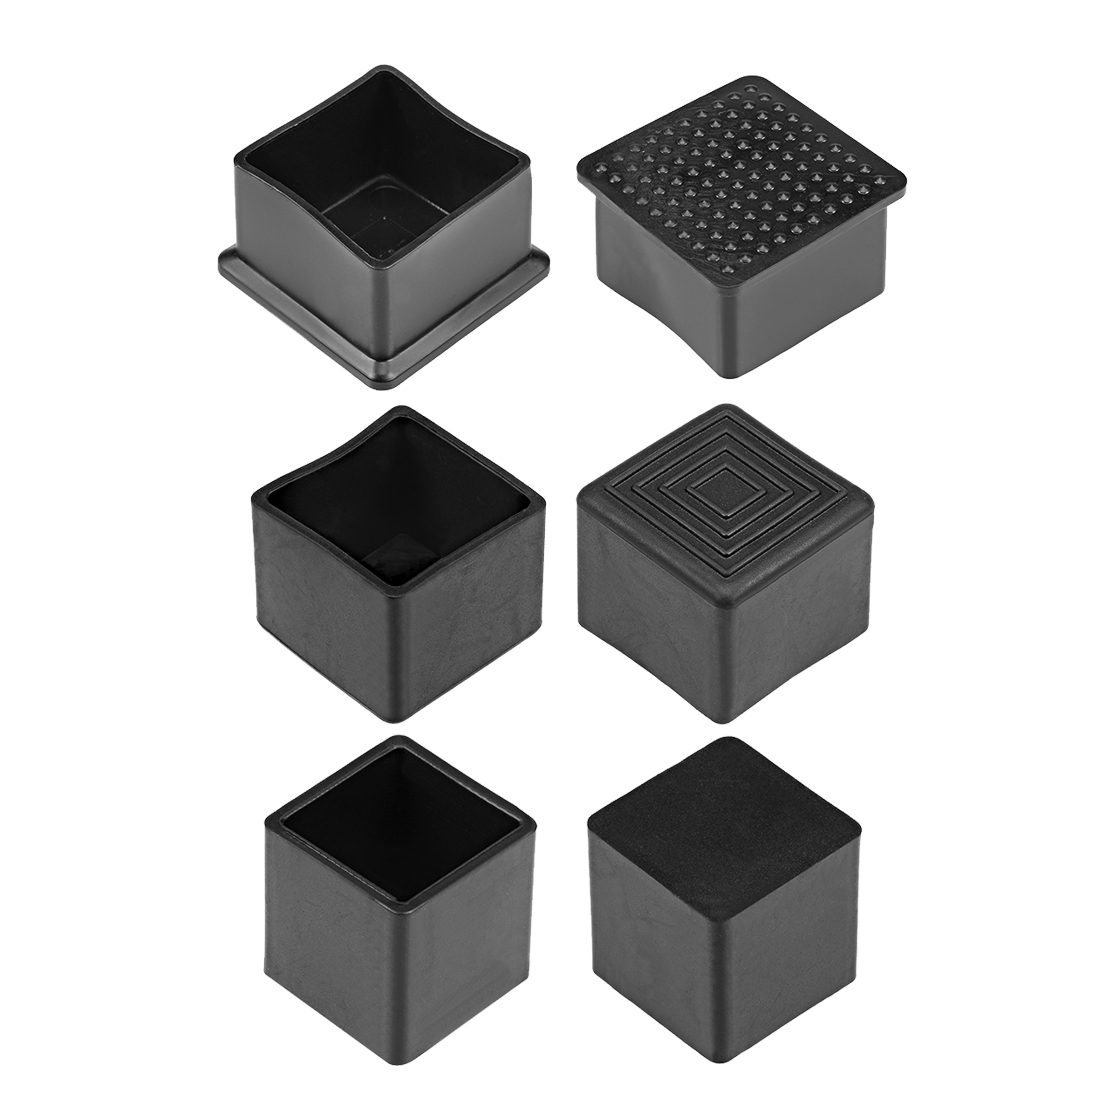 Uxcell Uxcell High Quality 10/30/100 Pcs Rubber End Caps Covers 28mm X 28mm Square Furniture Table Chair Legs